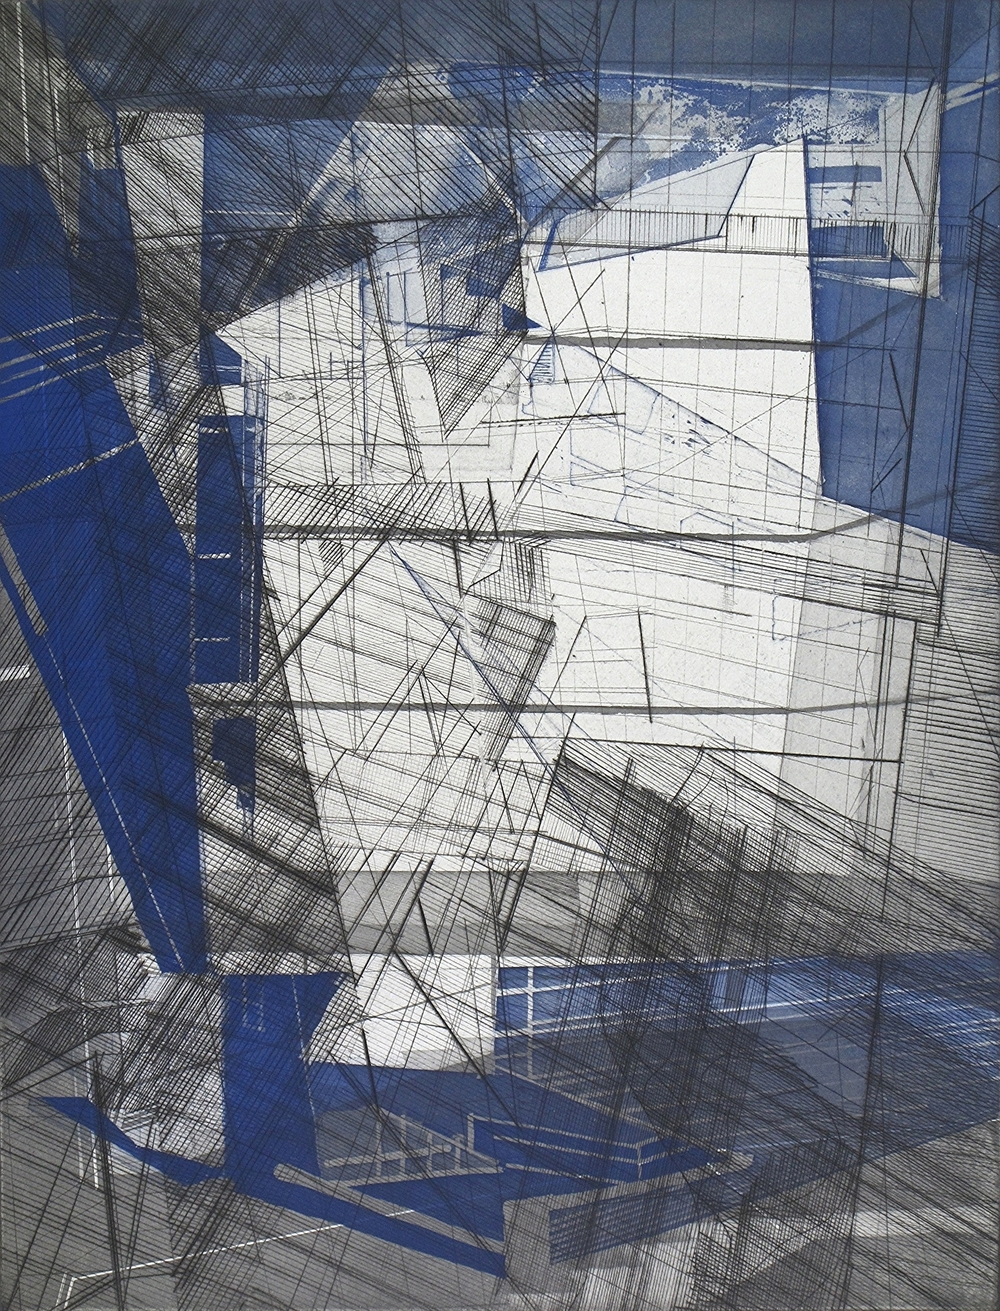 """Folding 2   engraving and aquatint  on Revere paper  image size: 24x18""""  2014"""